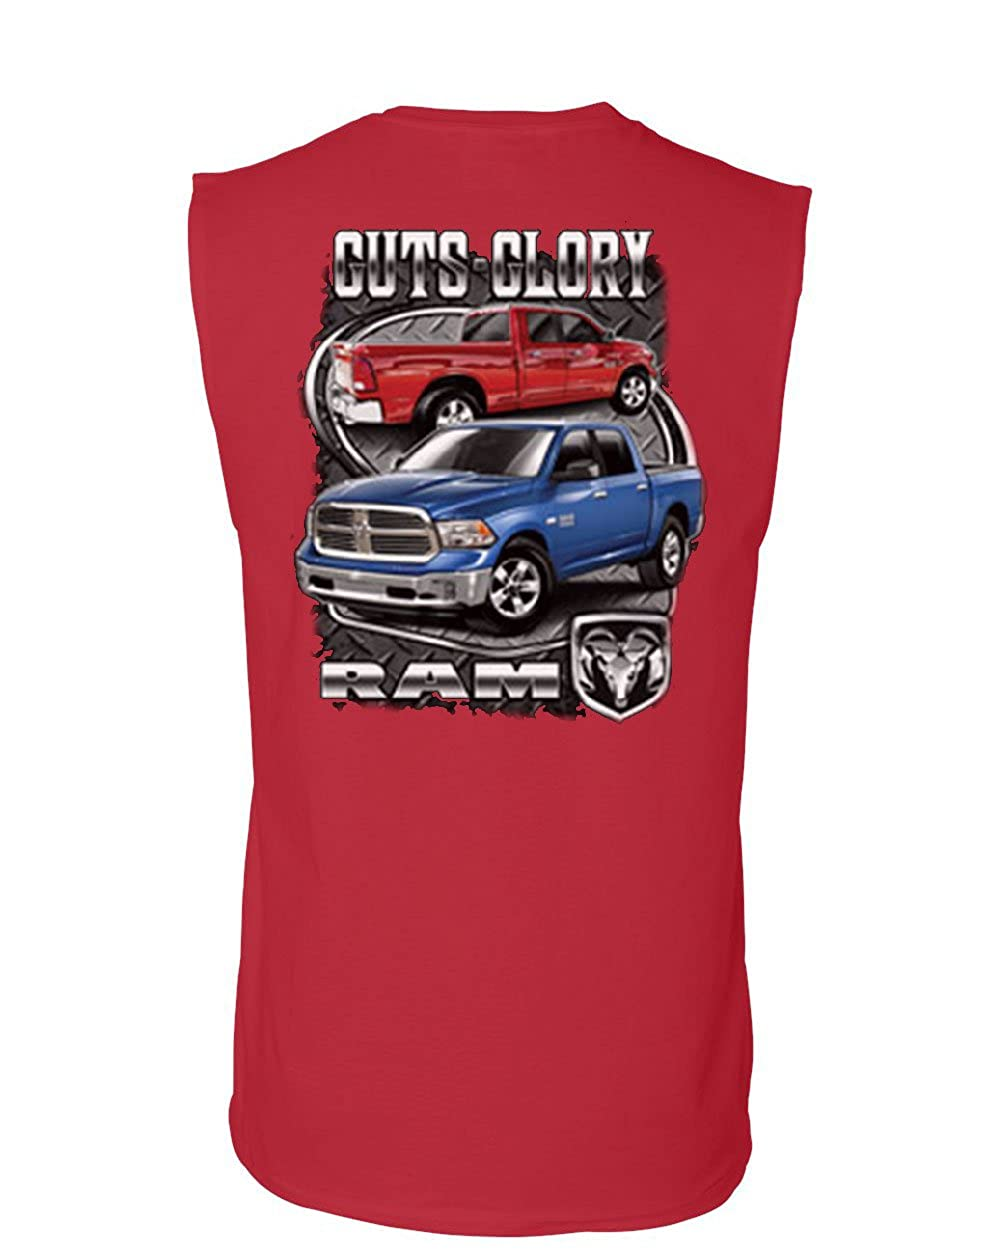 Dodge Ram Guts and Glory Muscle Shirt Dodge Truck Licensed